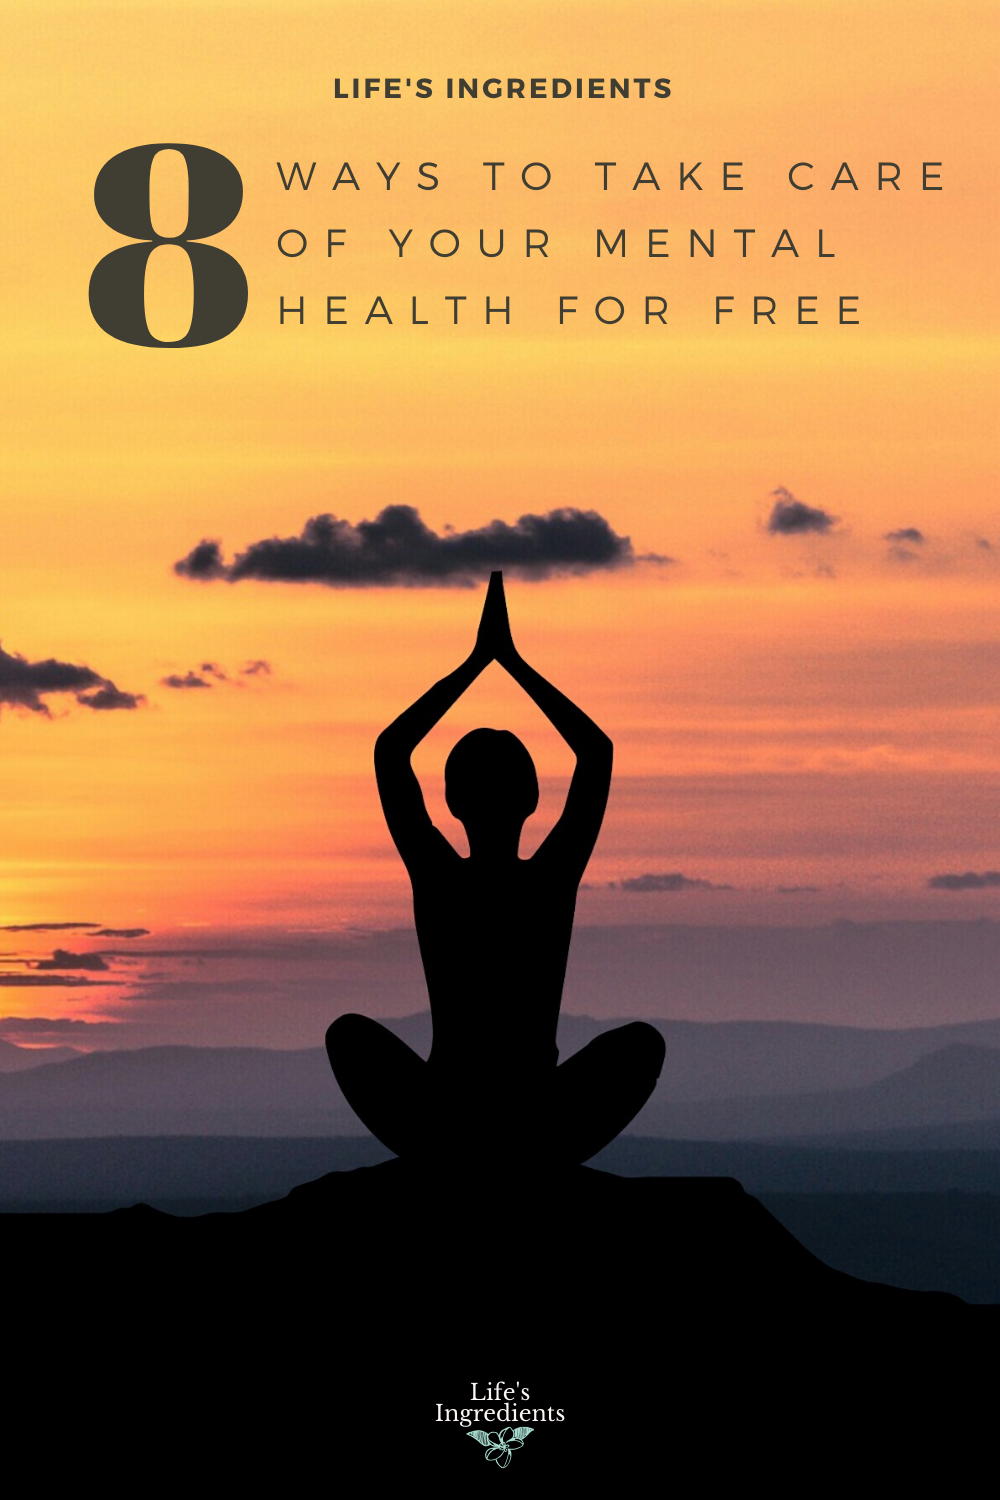 How to Take Care of Your Mental Health for Free